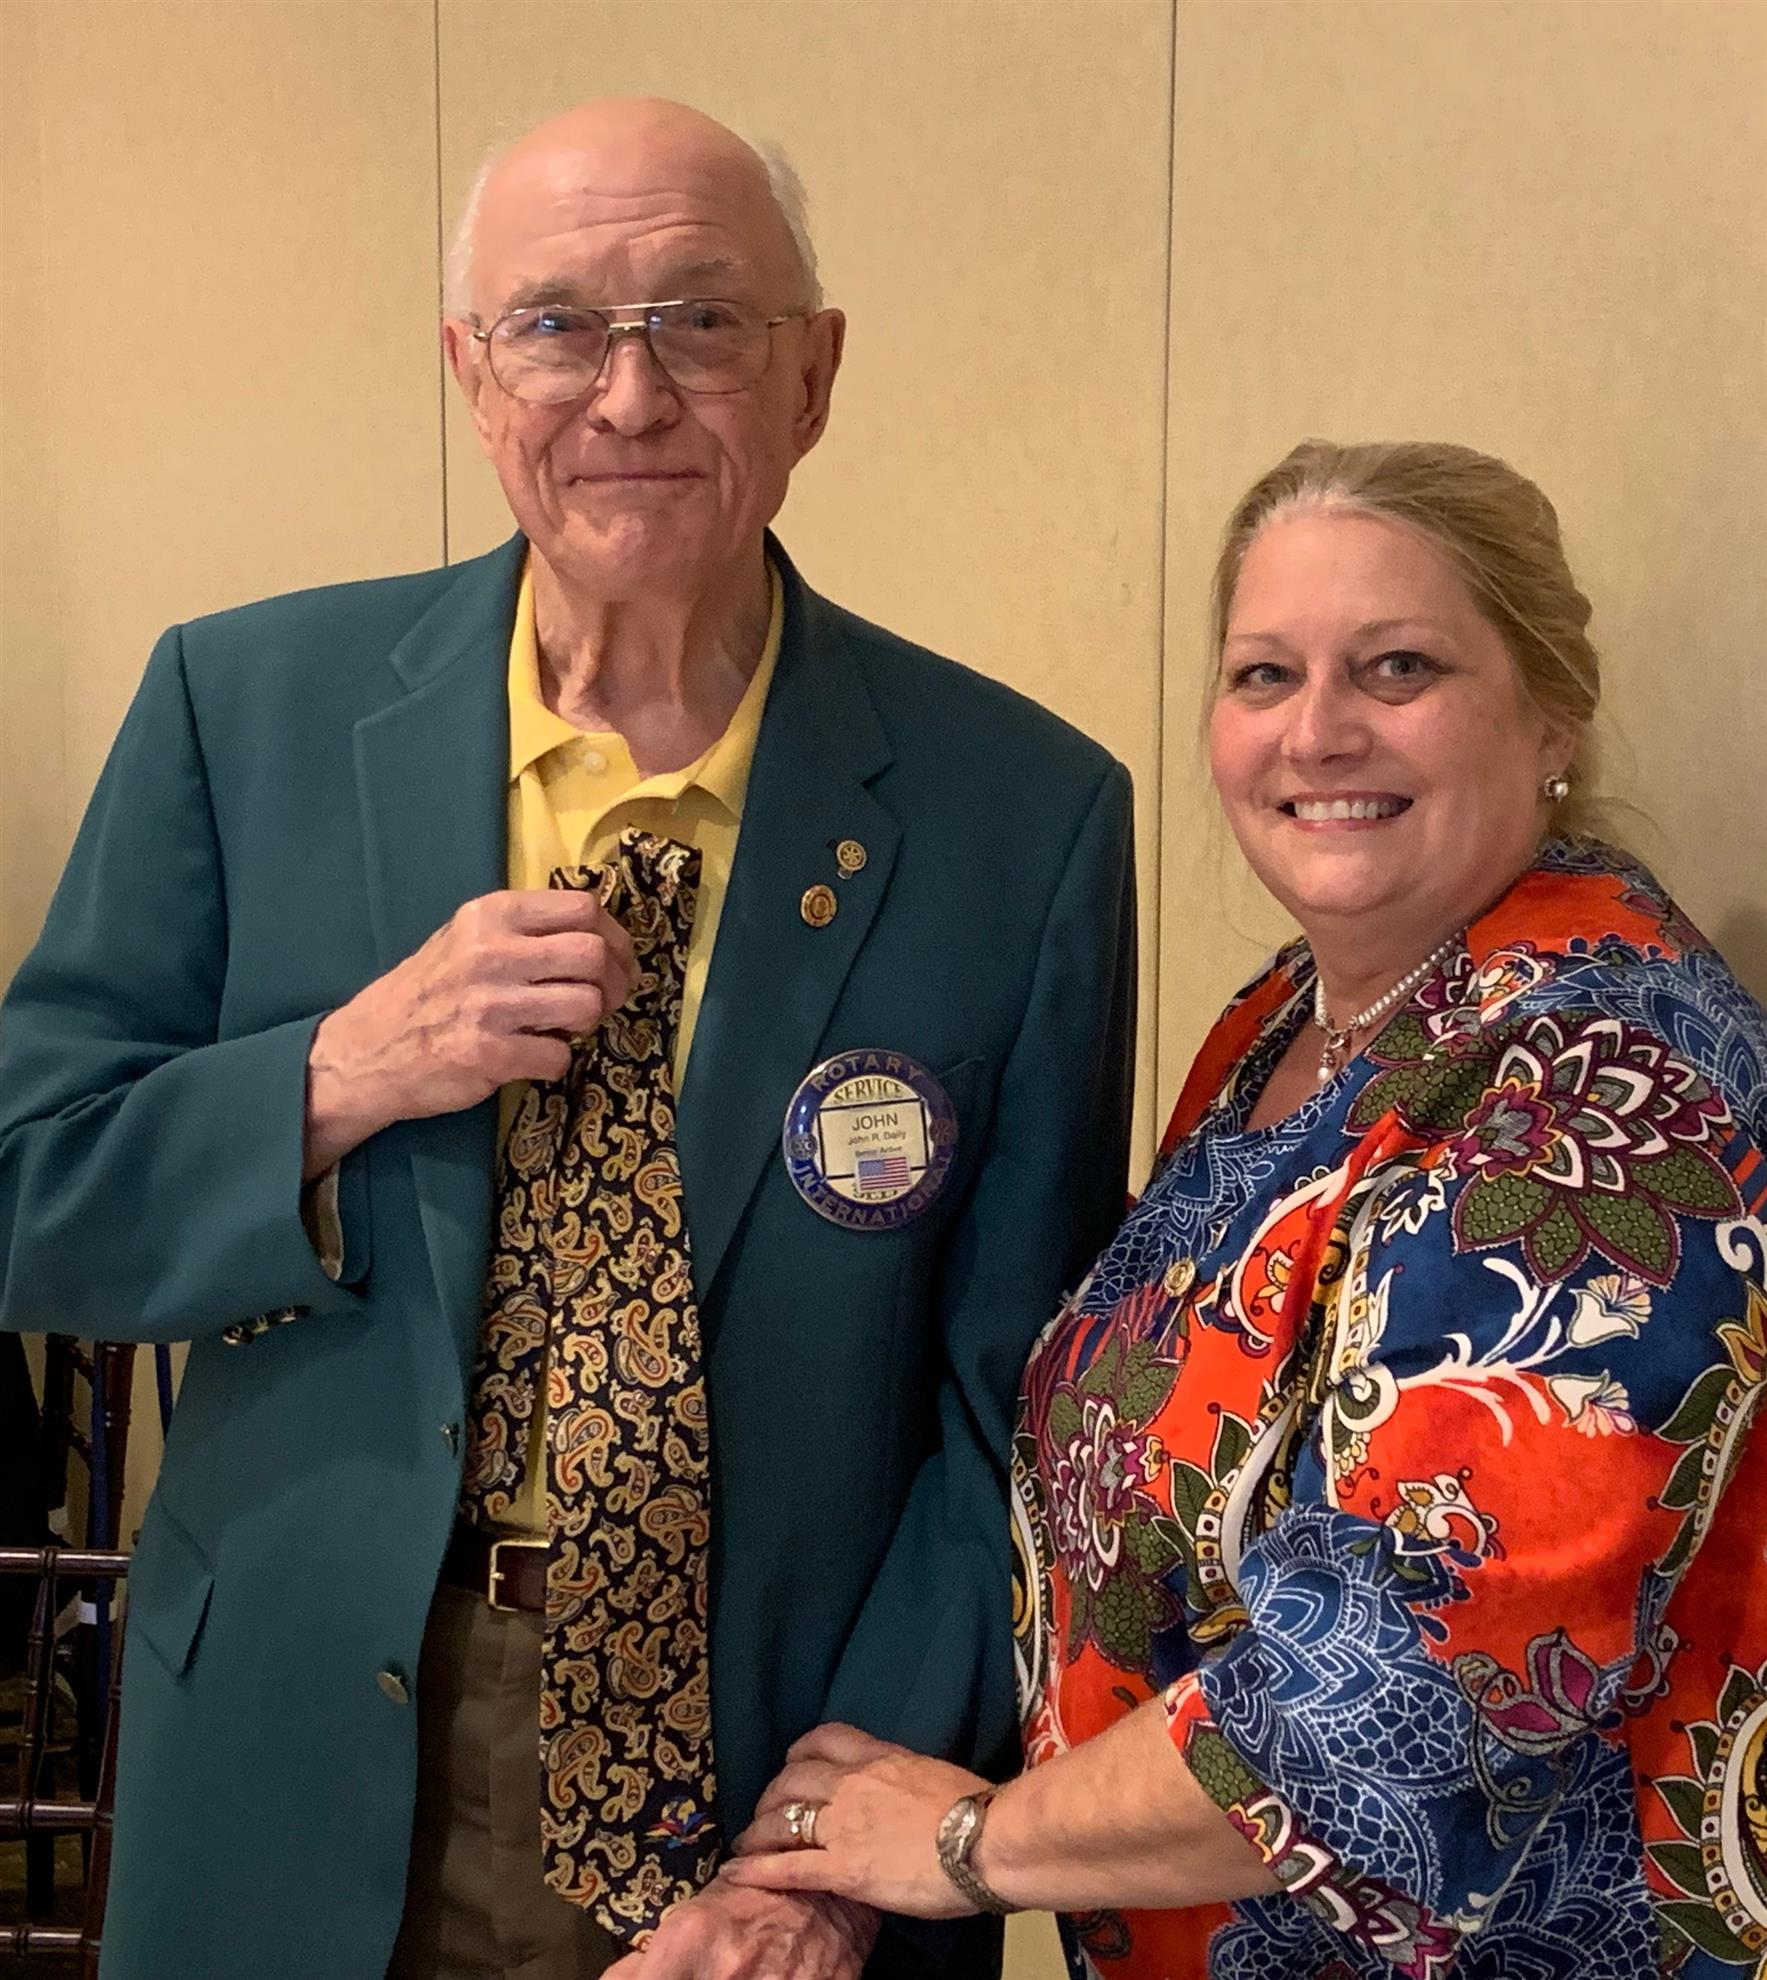 954c2c37 Stories | Rotary Club of Akron